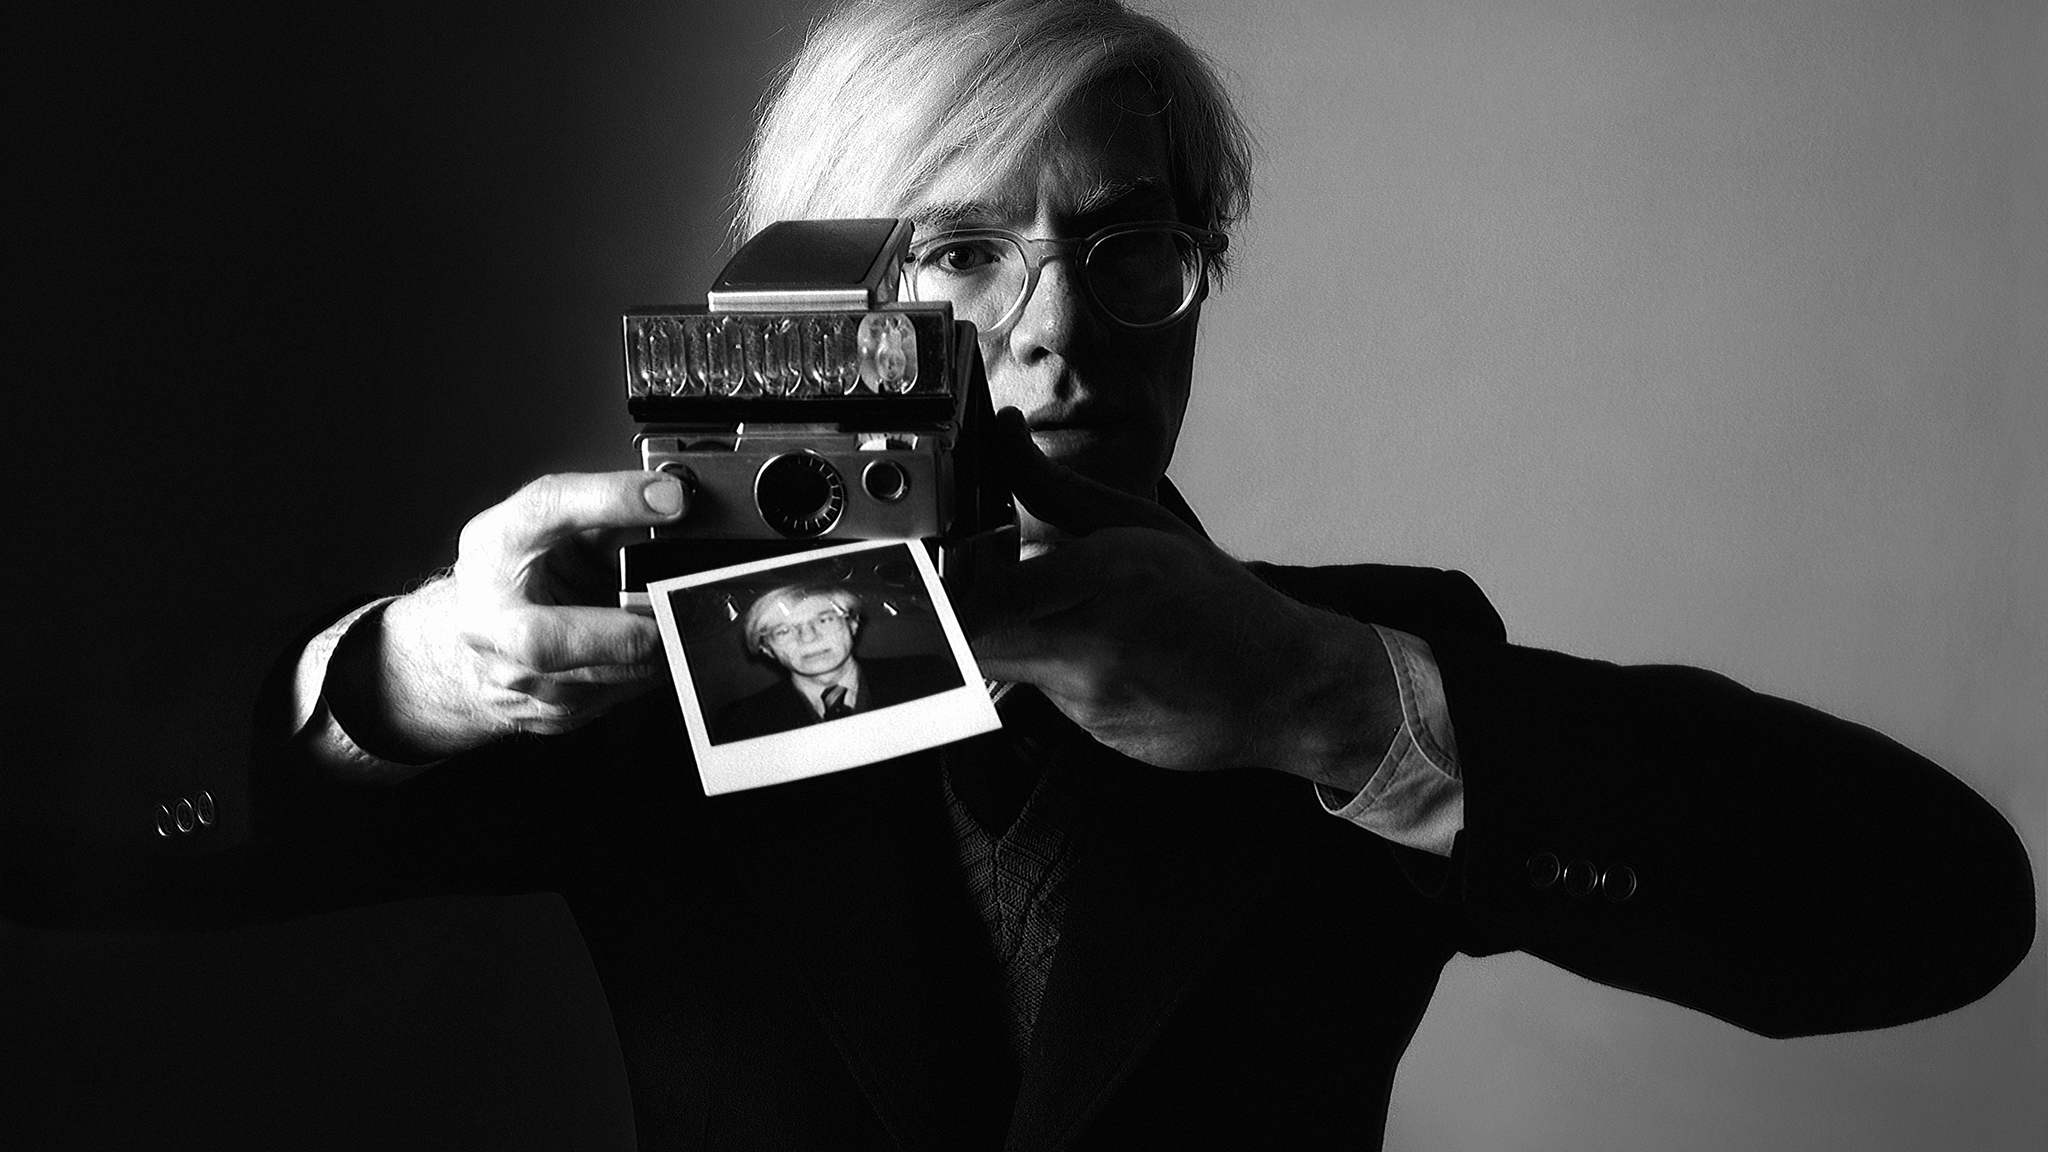 How Andy Warhol foreshadowed our compulsive romance with technology